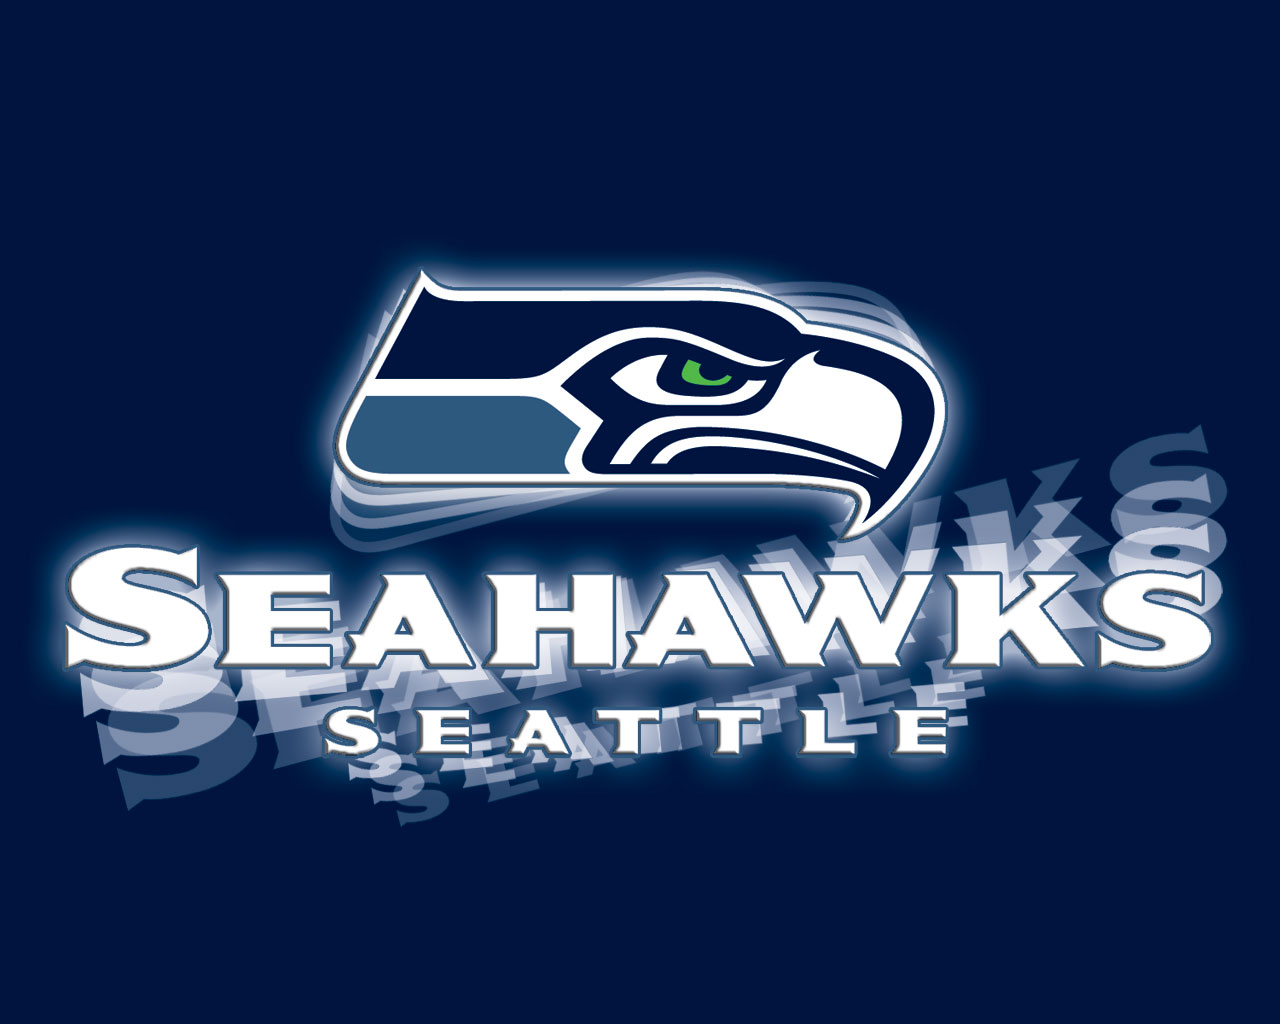 Download Seahawks Wallpaper